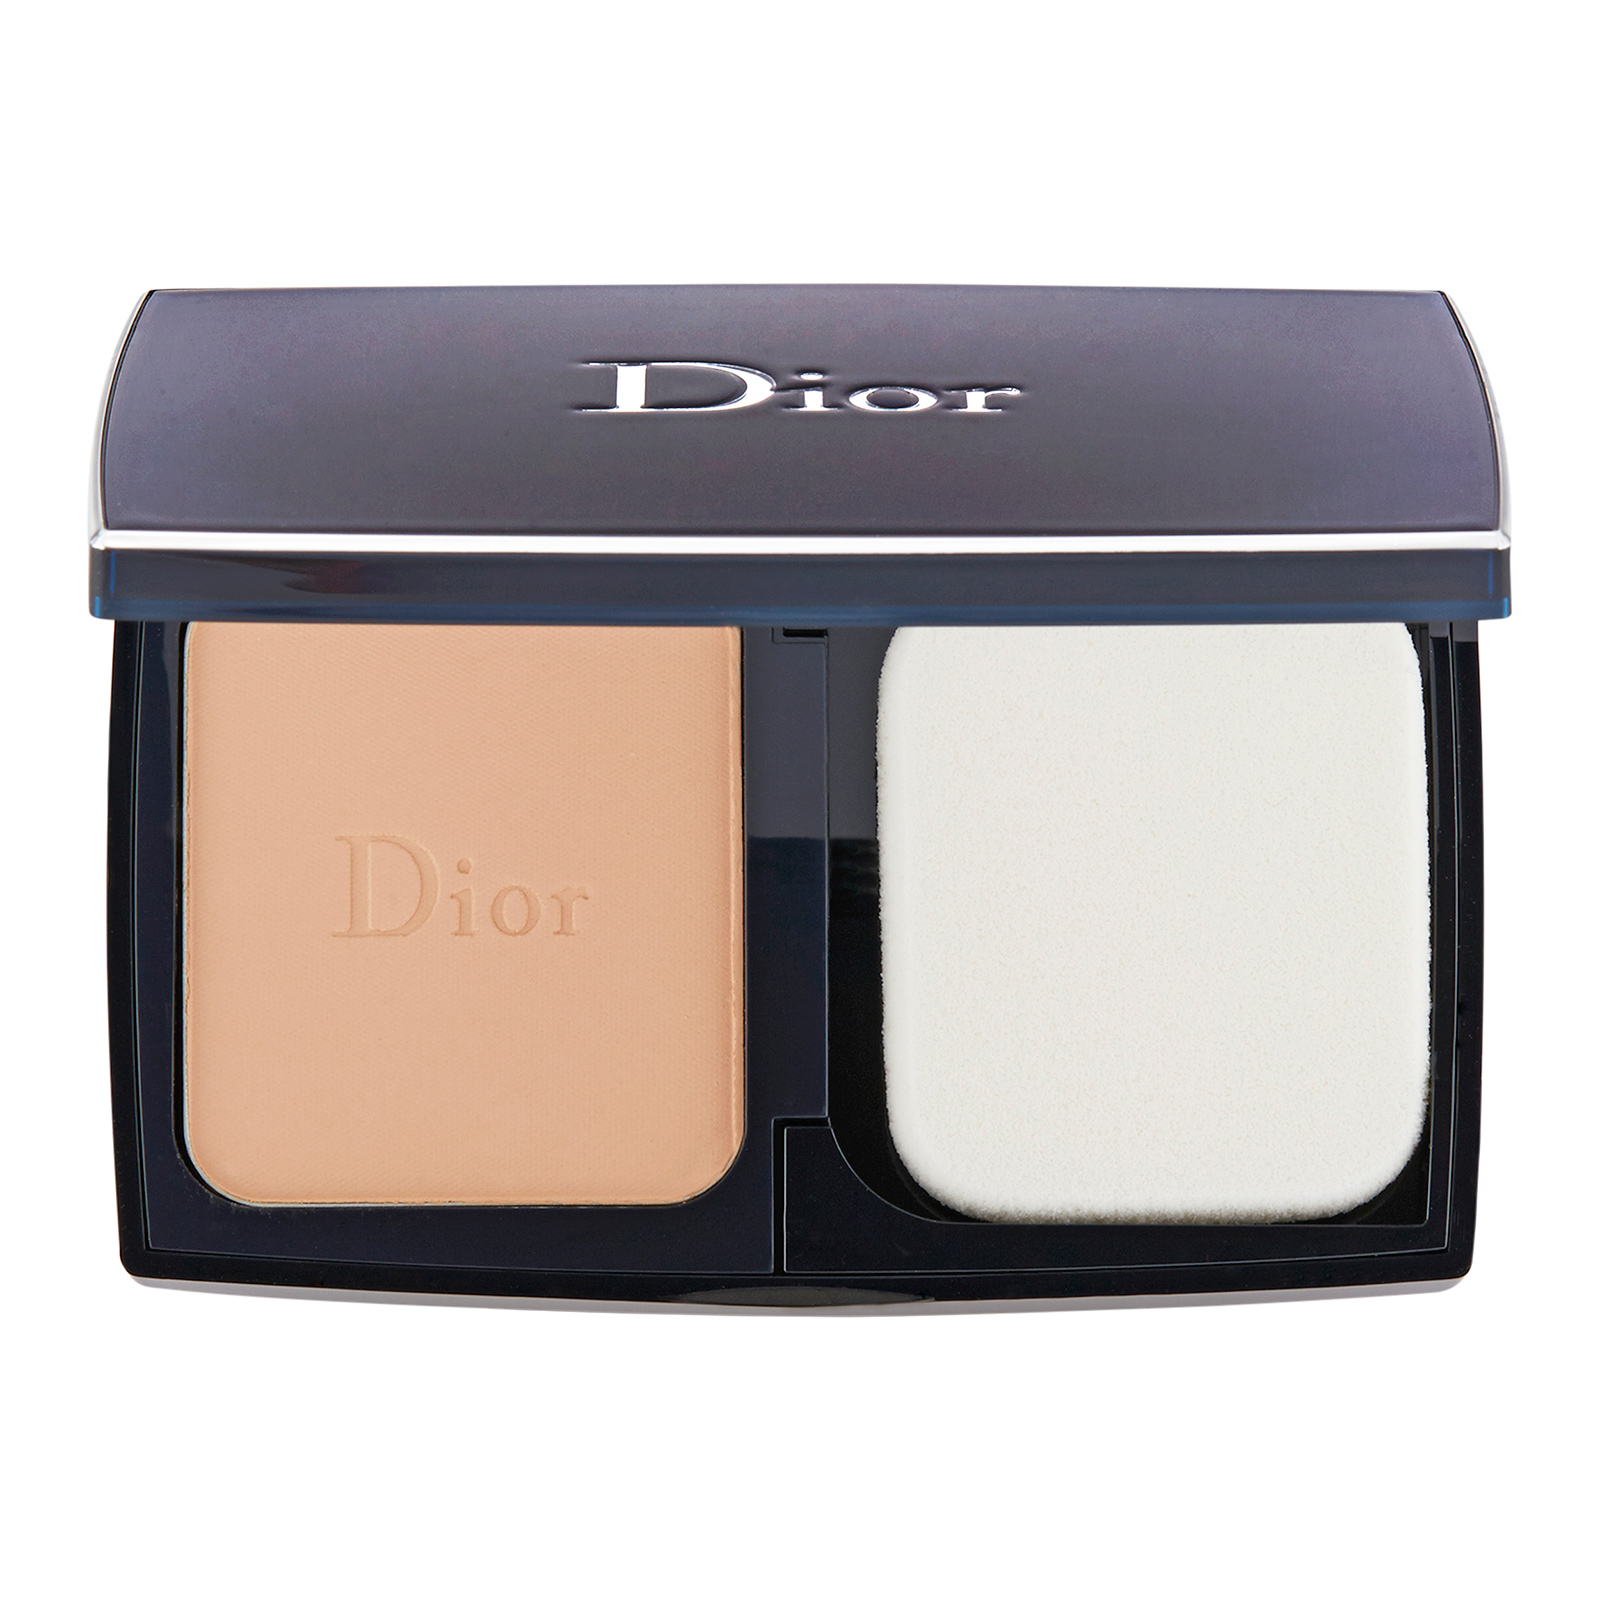 Christian Dior DiorSkin Forever Flawless Perfection Fusion Wear Makeup FPS 25 SPF / PA++ 020 Light Beige, 0.35oz, 10g